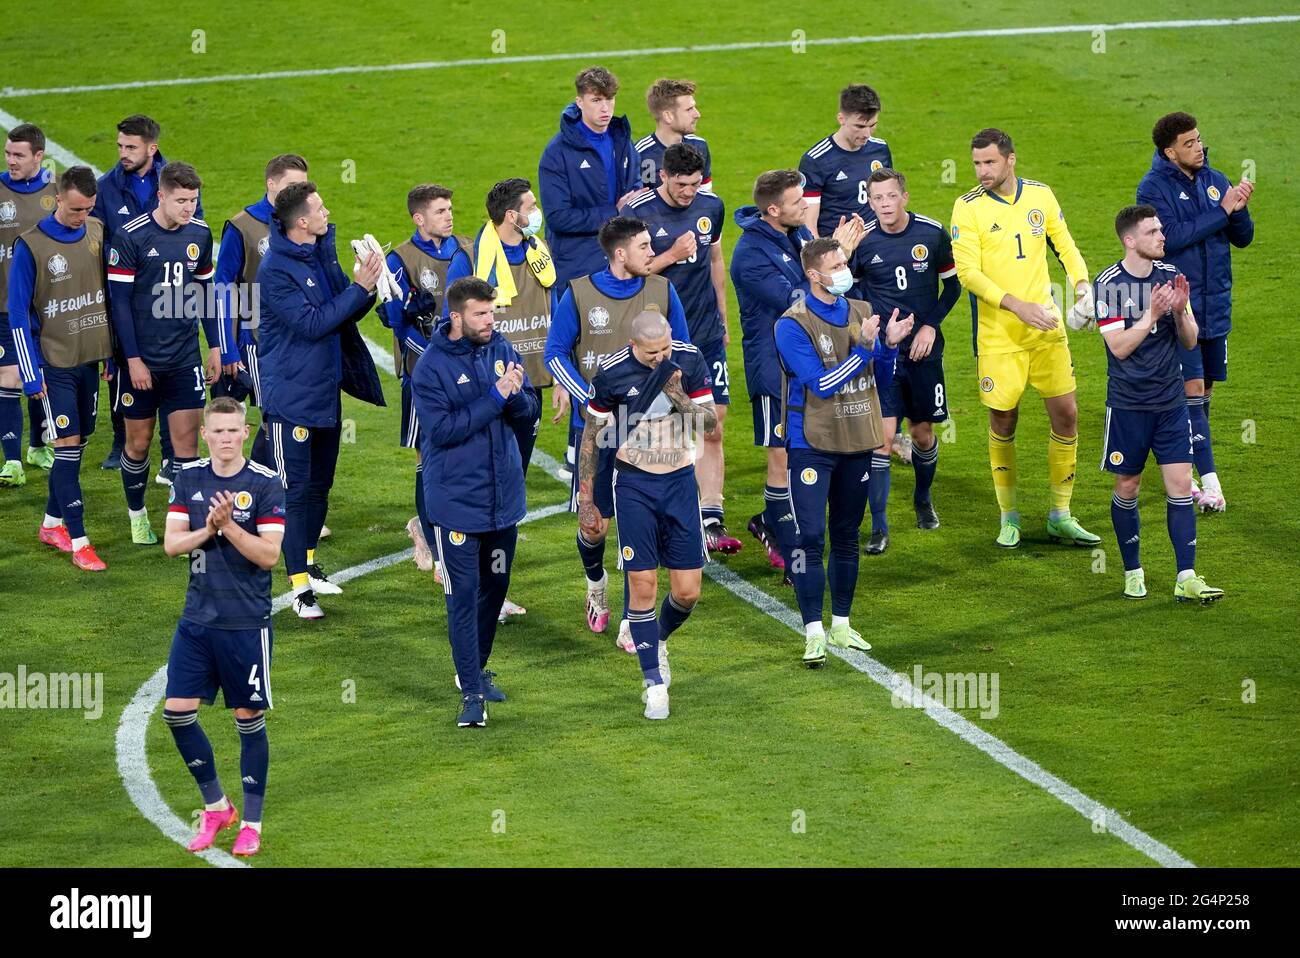 Scotland players applaud the fans after the final whistle during the UEFA Euro 2020 Group D match at Hampden Park, Glasgow. Picture date: Tuesday June 22, 2021. Stock Photo